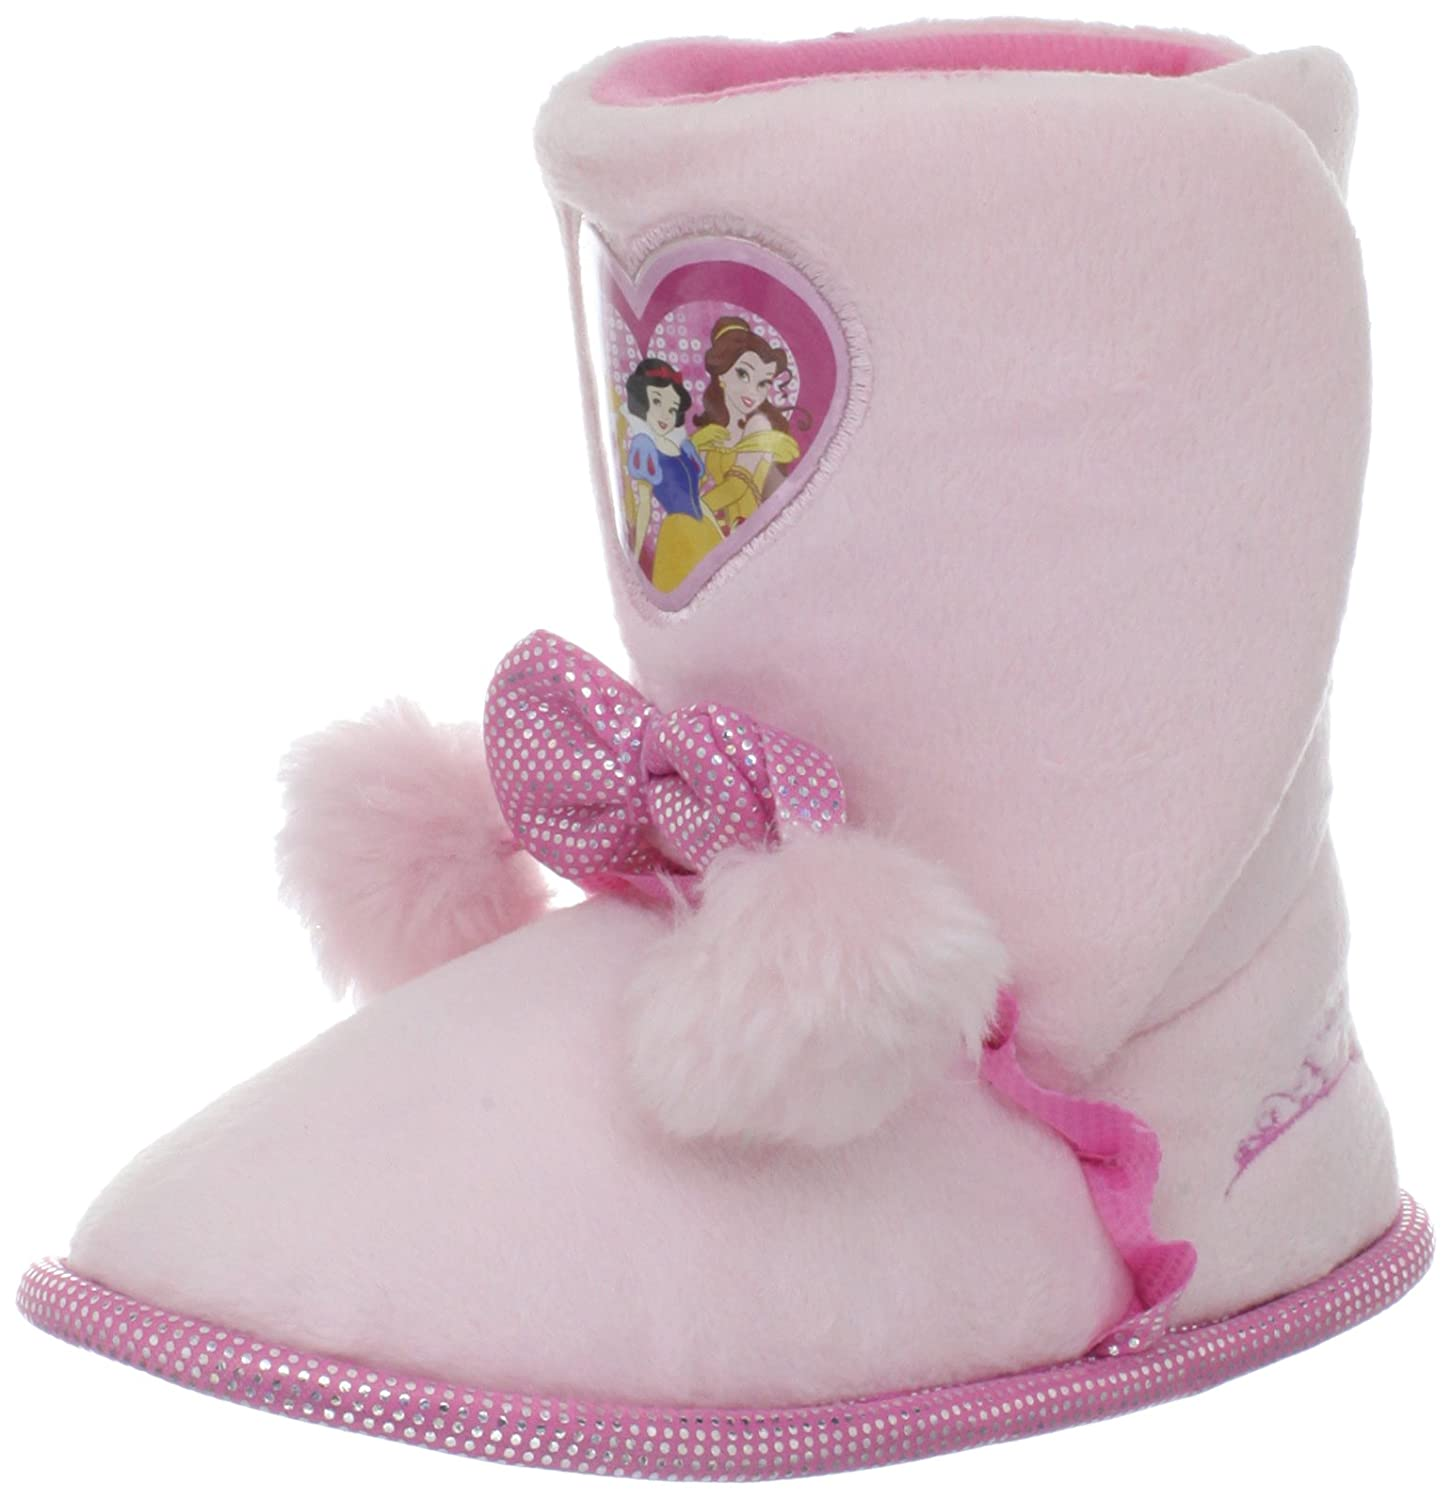 Disney 0PRF231 Princess Slipper (Toddler/Little Kid)